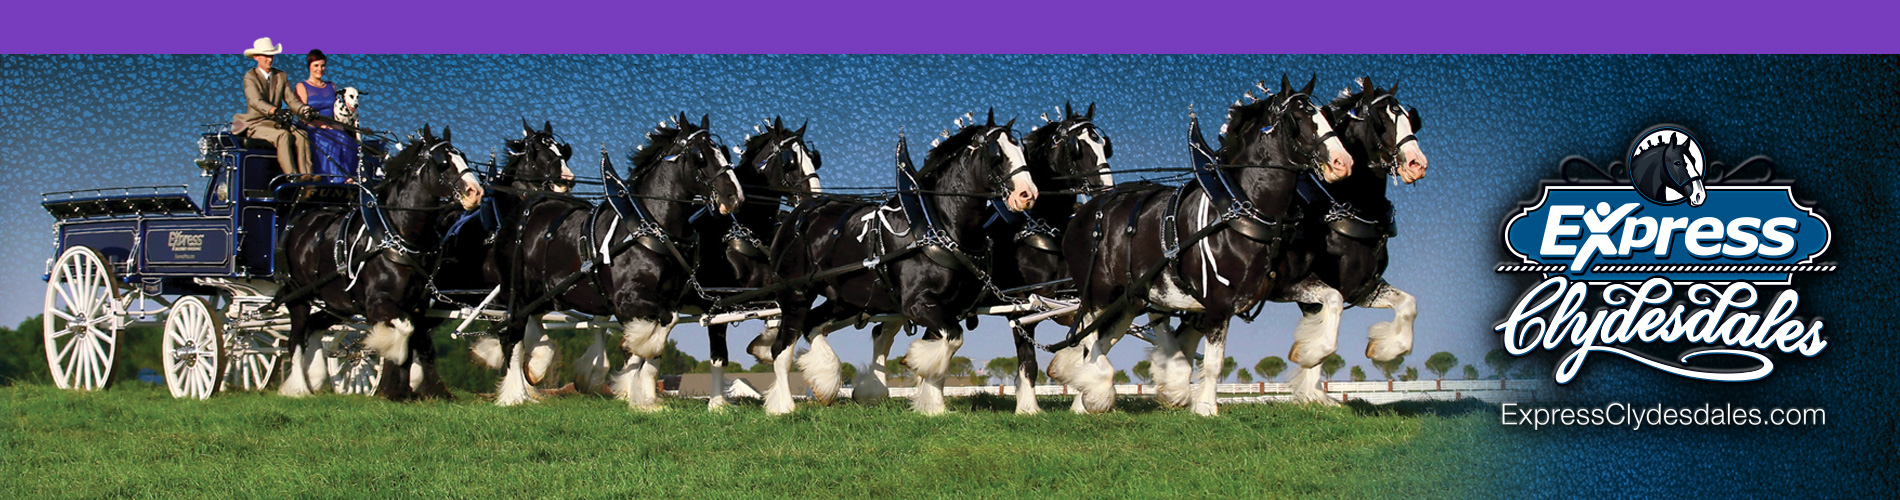 Clydesdales Generic Home Page Banner Image